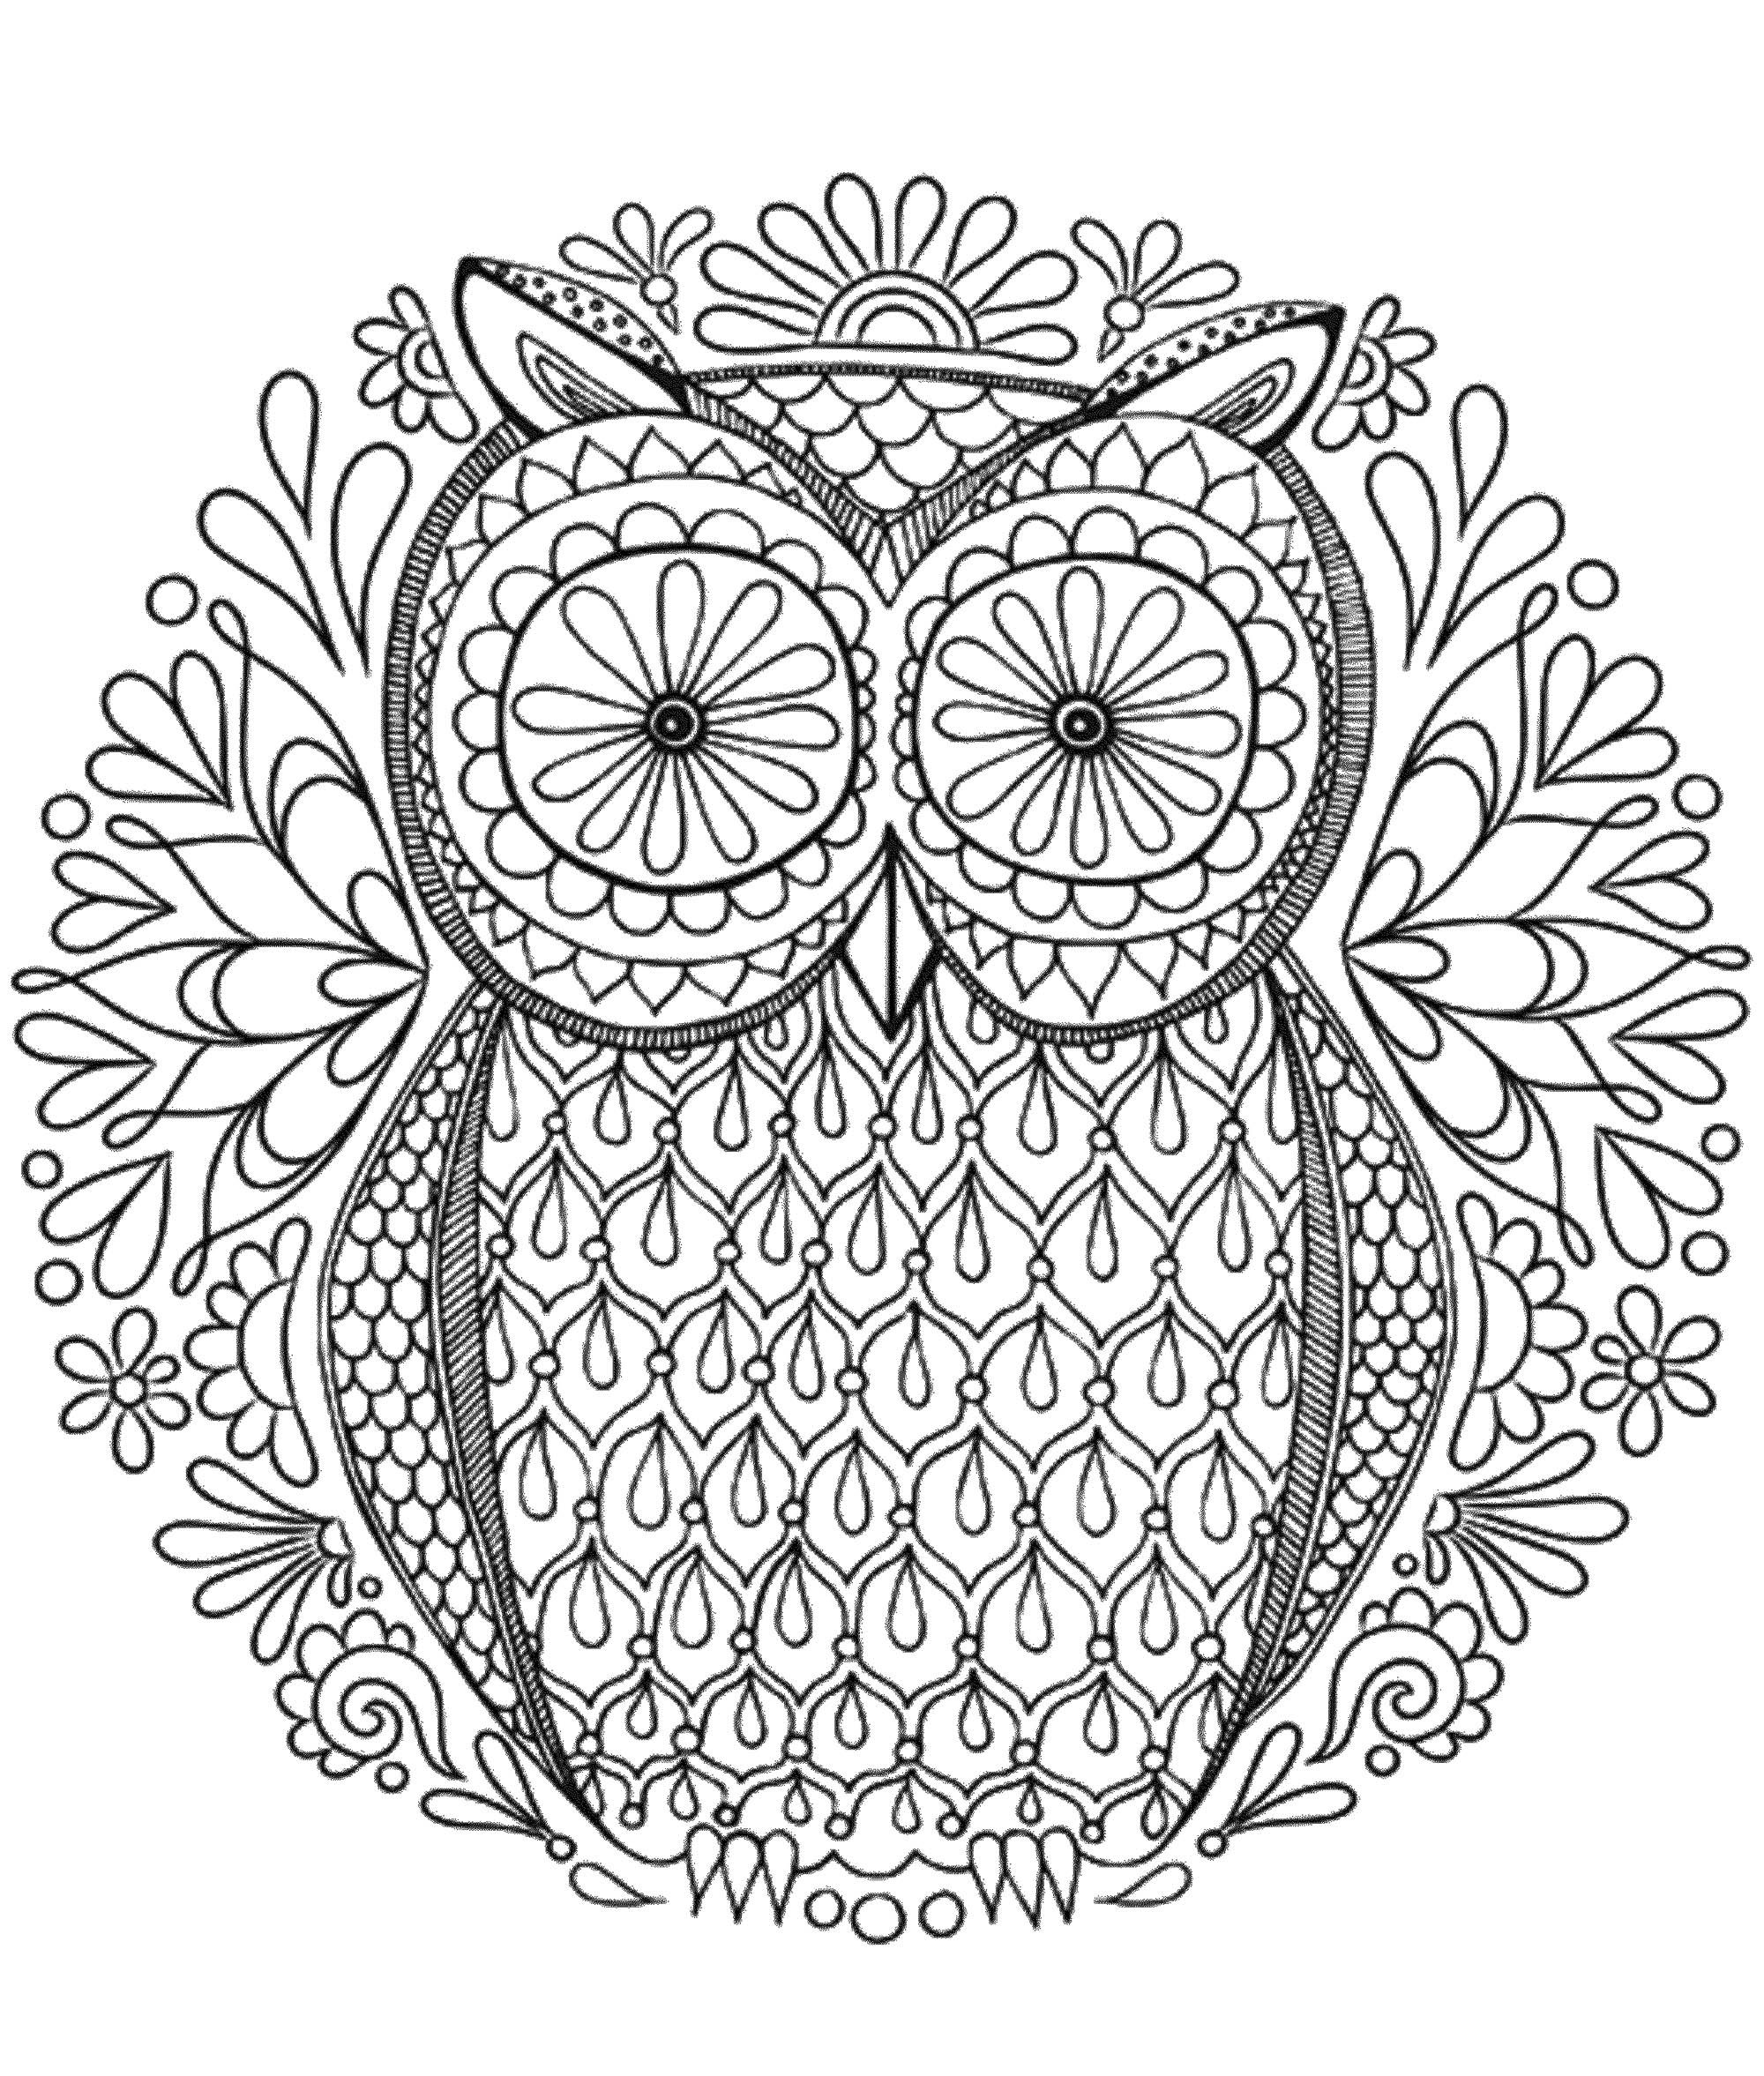 Mandala To Download In Pdf 6 Mandalas Coloring Pages For Adults